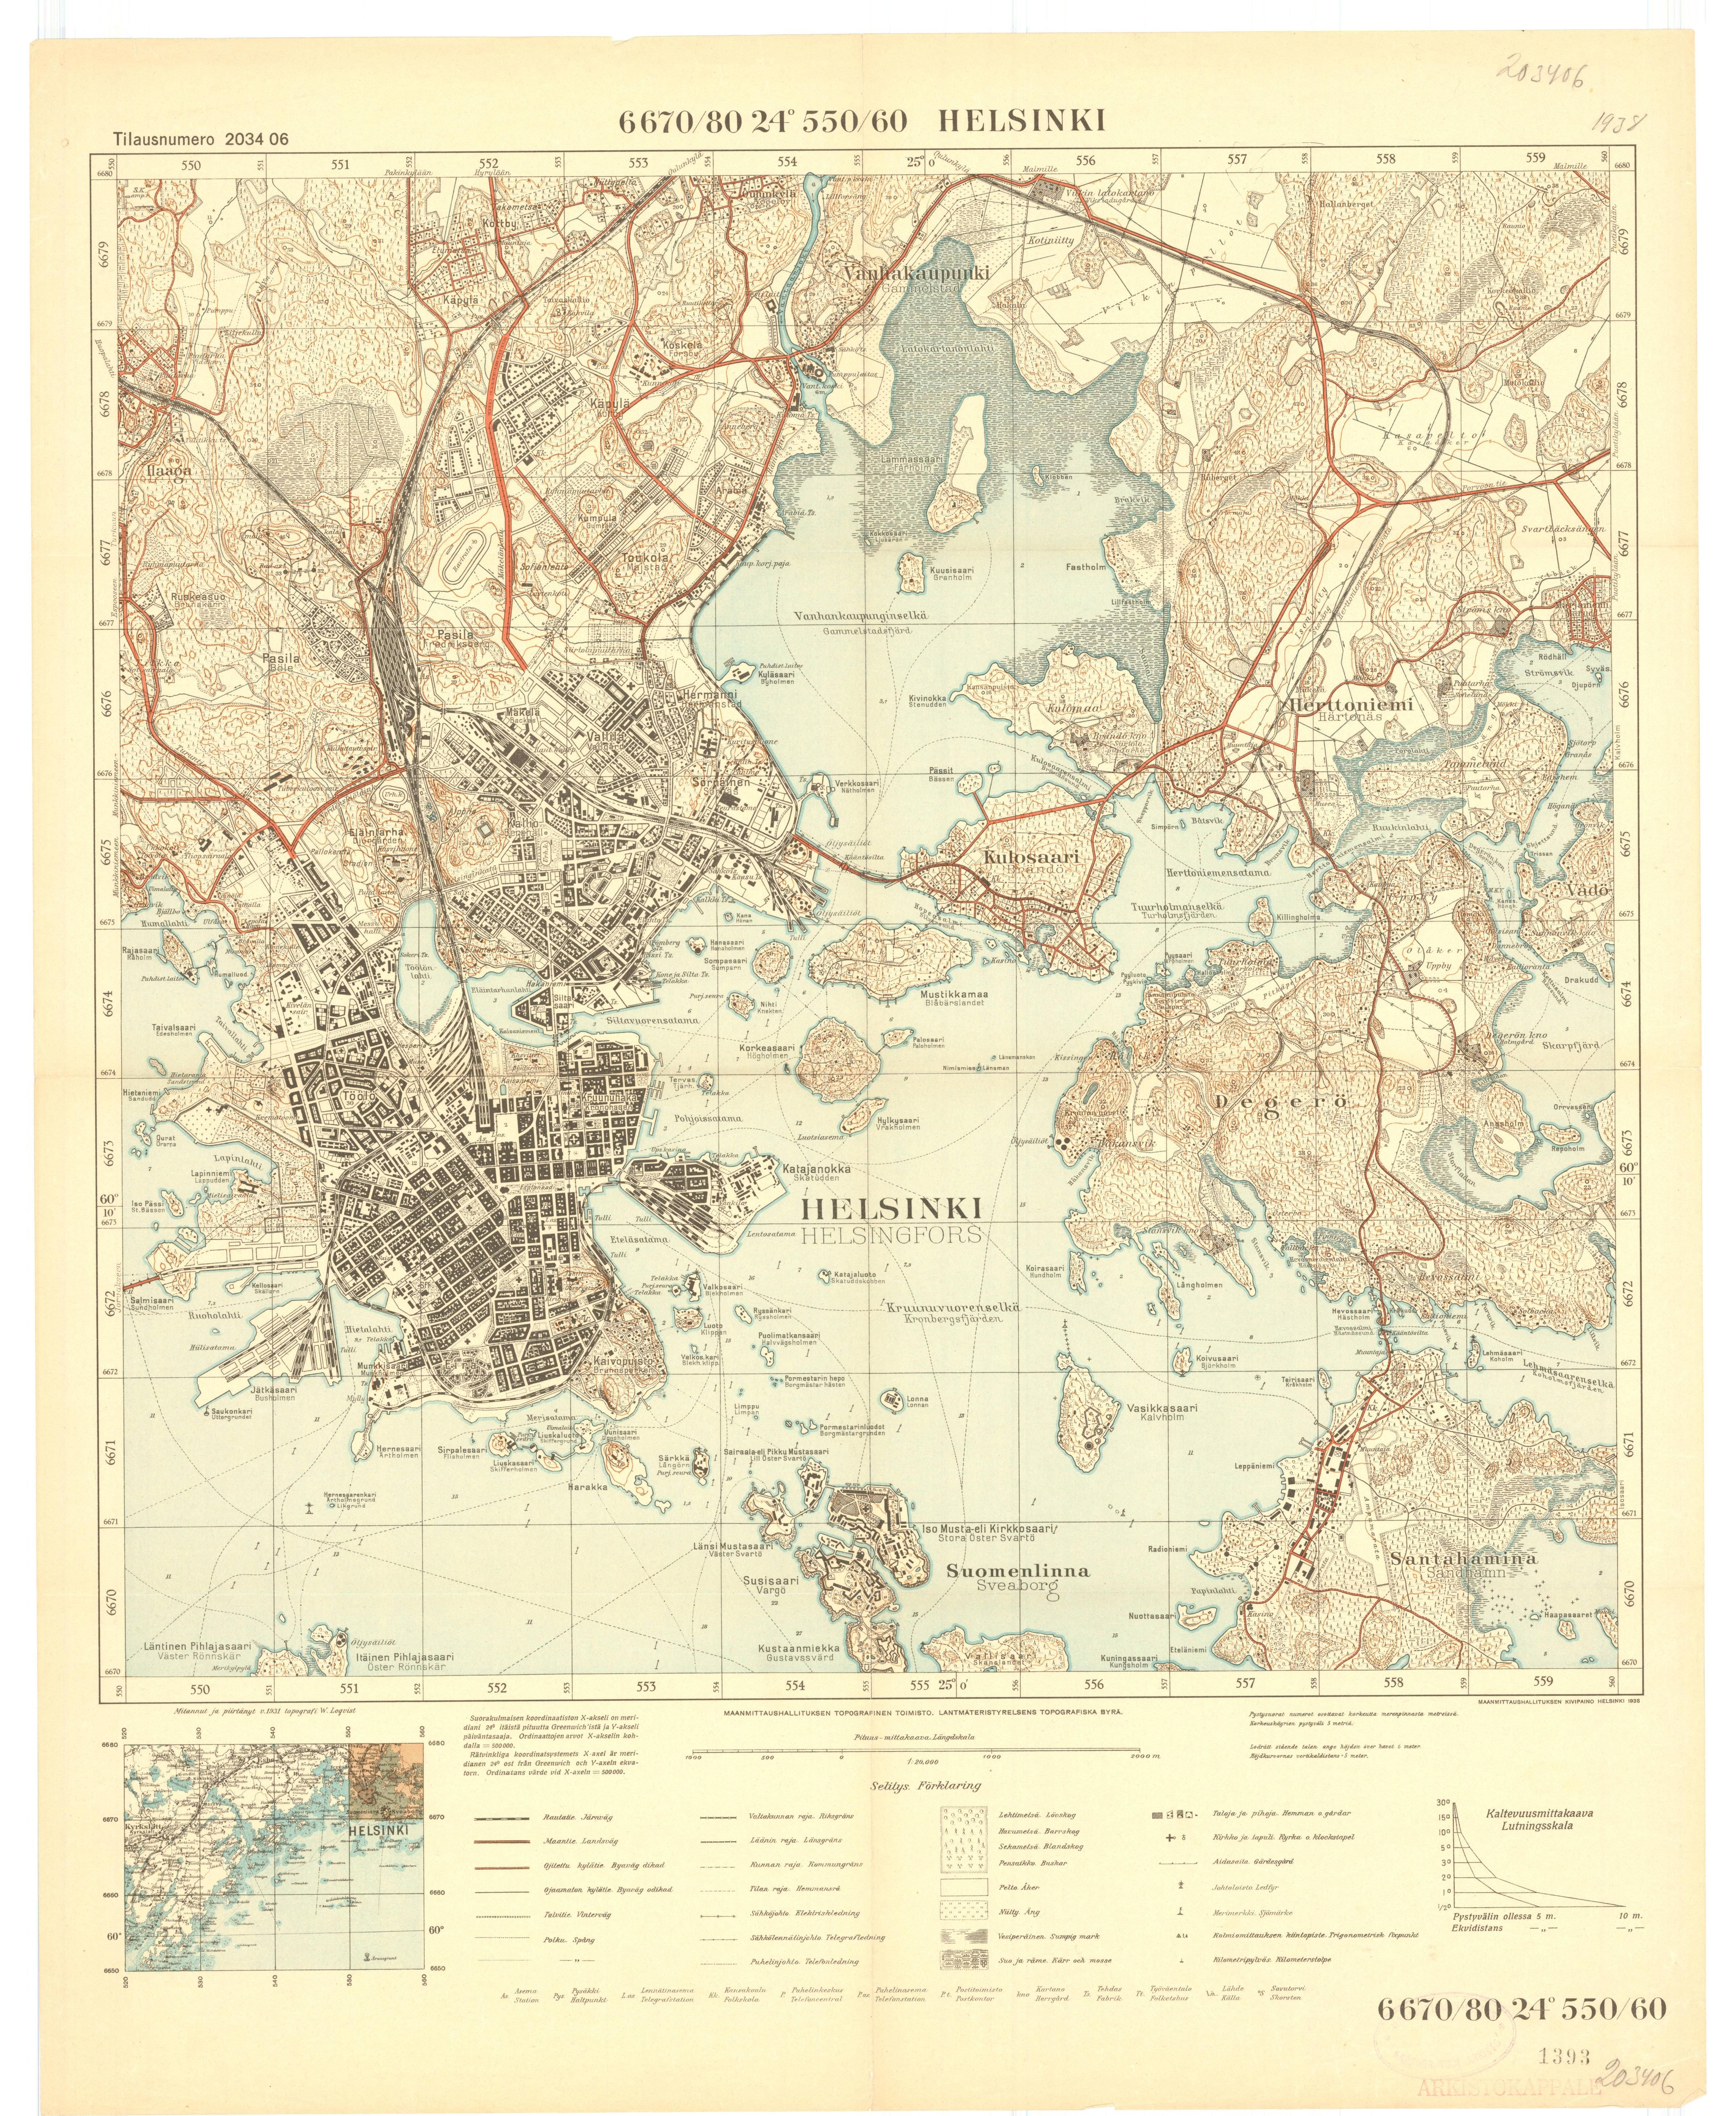 Wood Elevation Maps : Topographic map of helsinki by national land survey